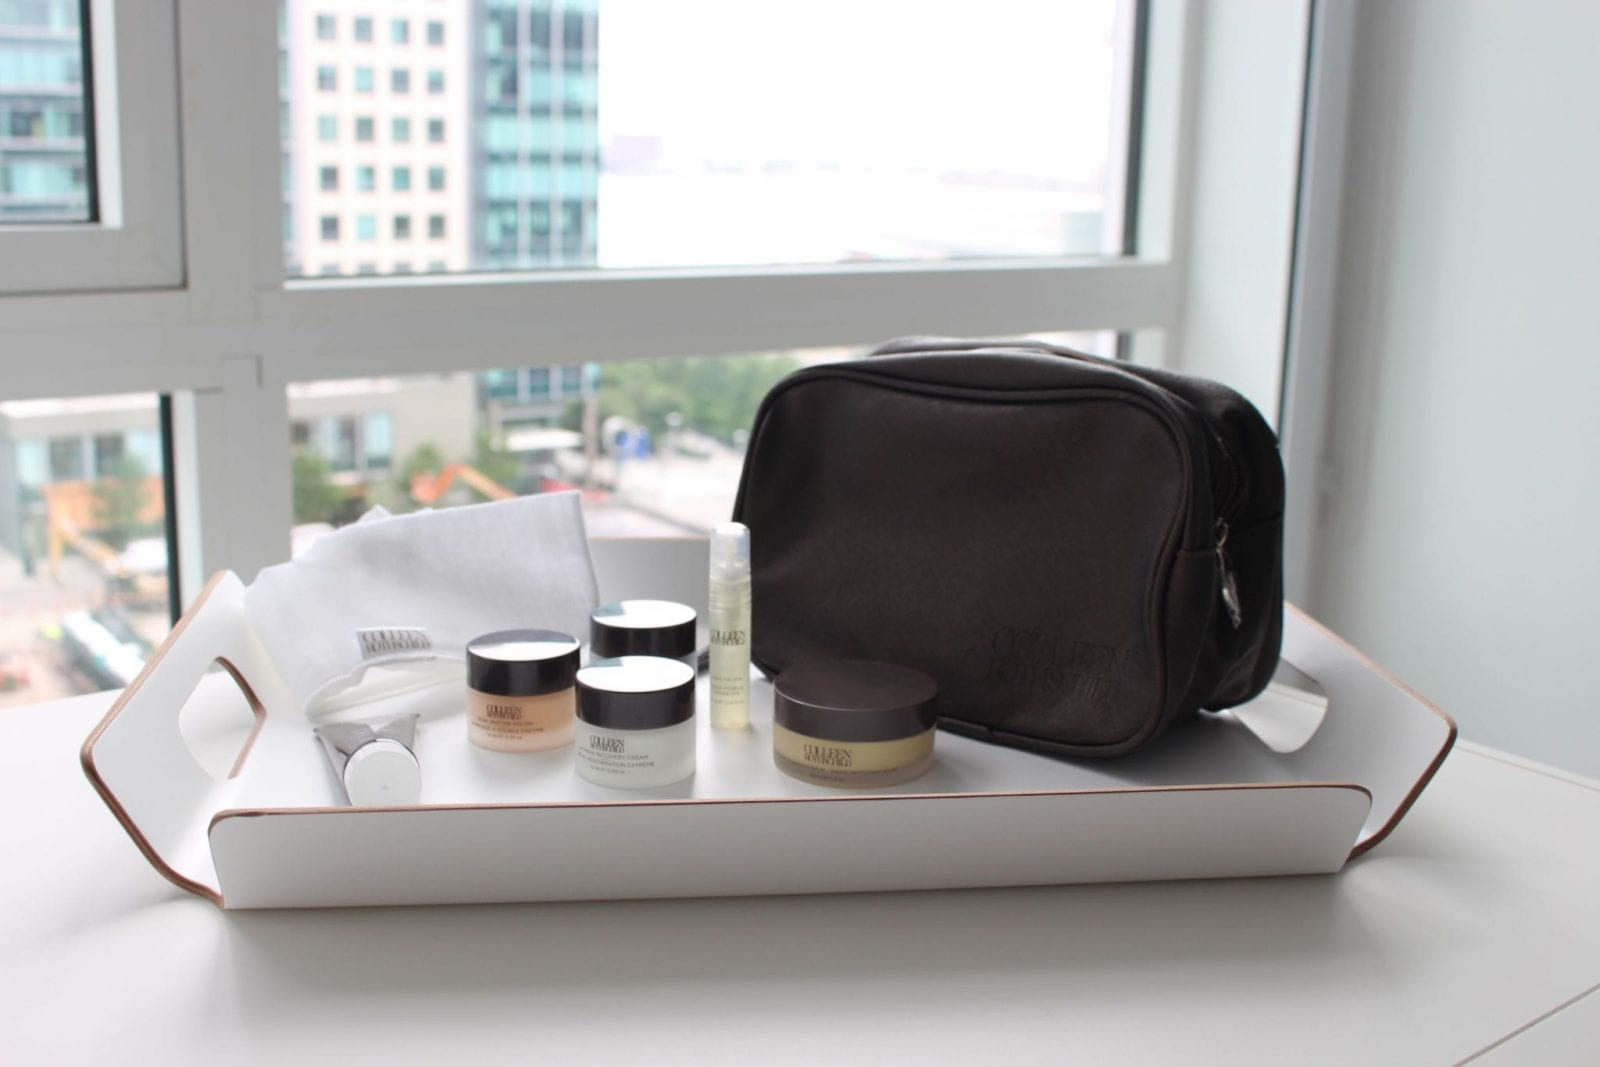 Travel Skin Care Favorites with a View from YOTEL Boston.